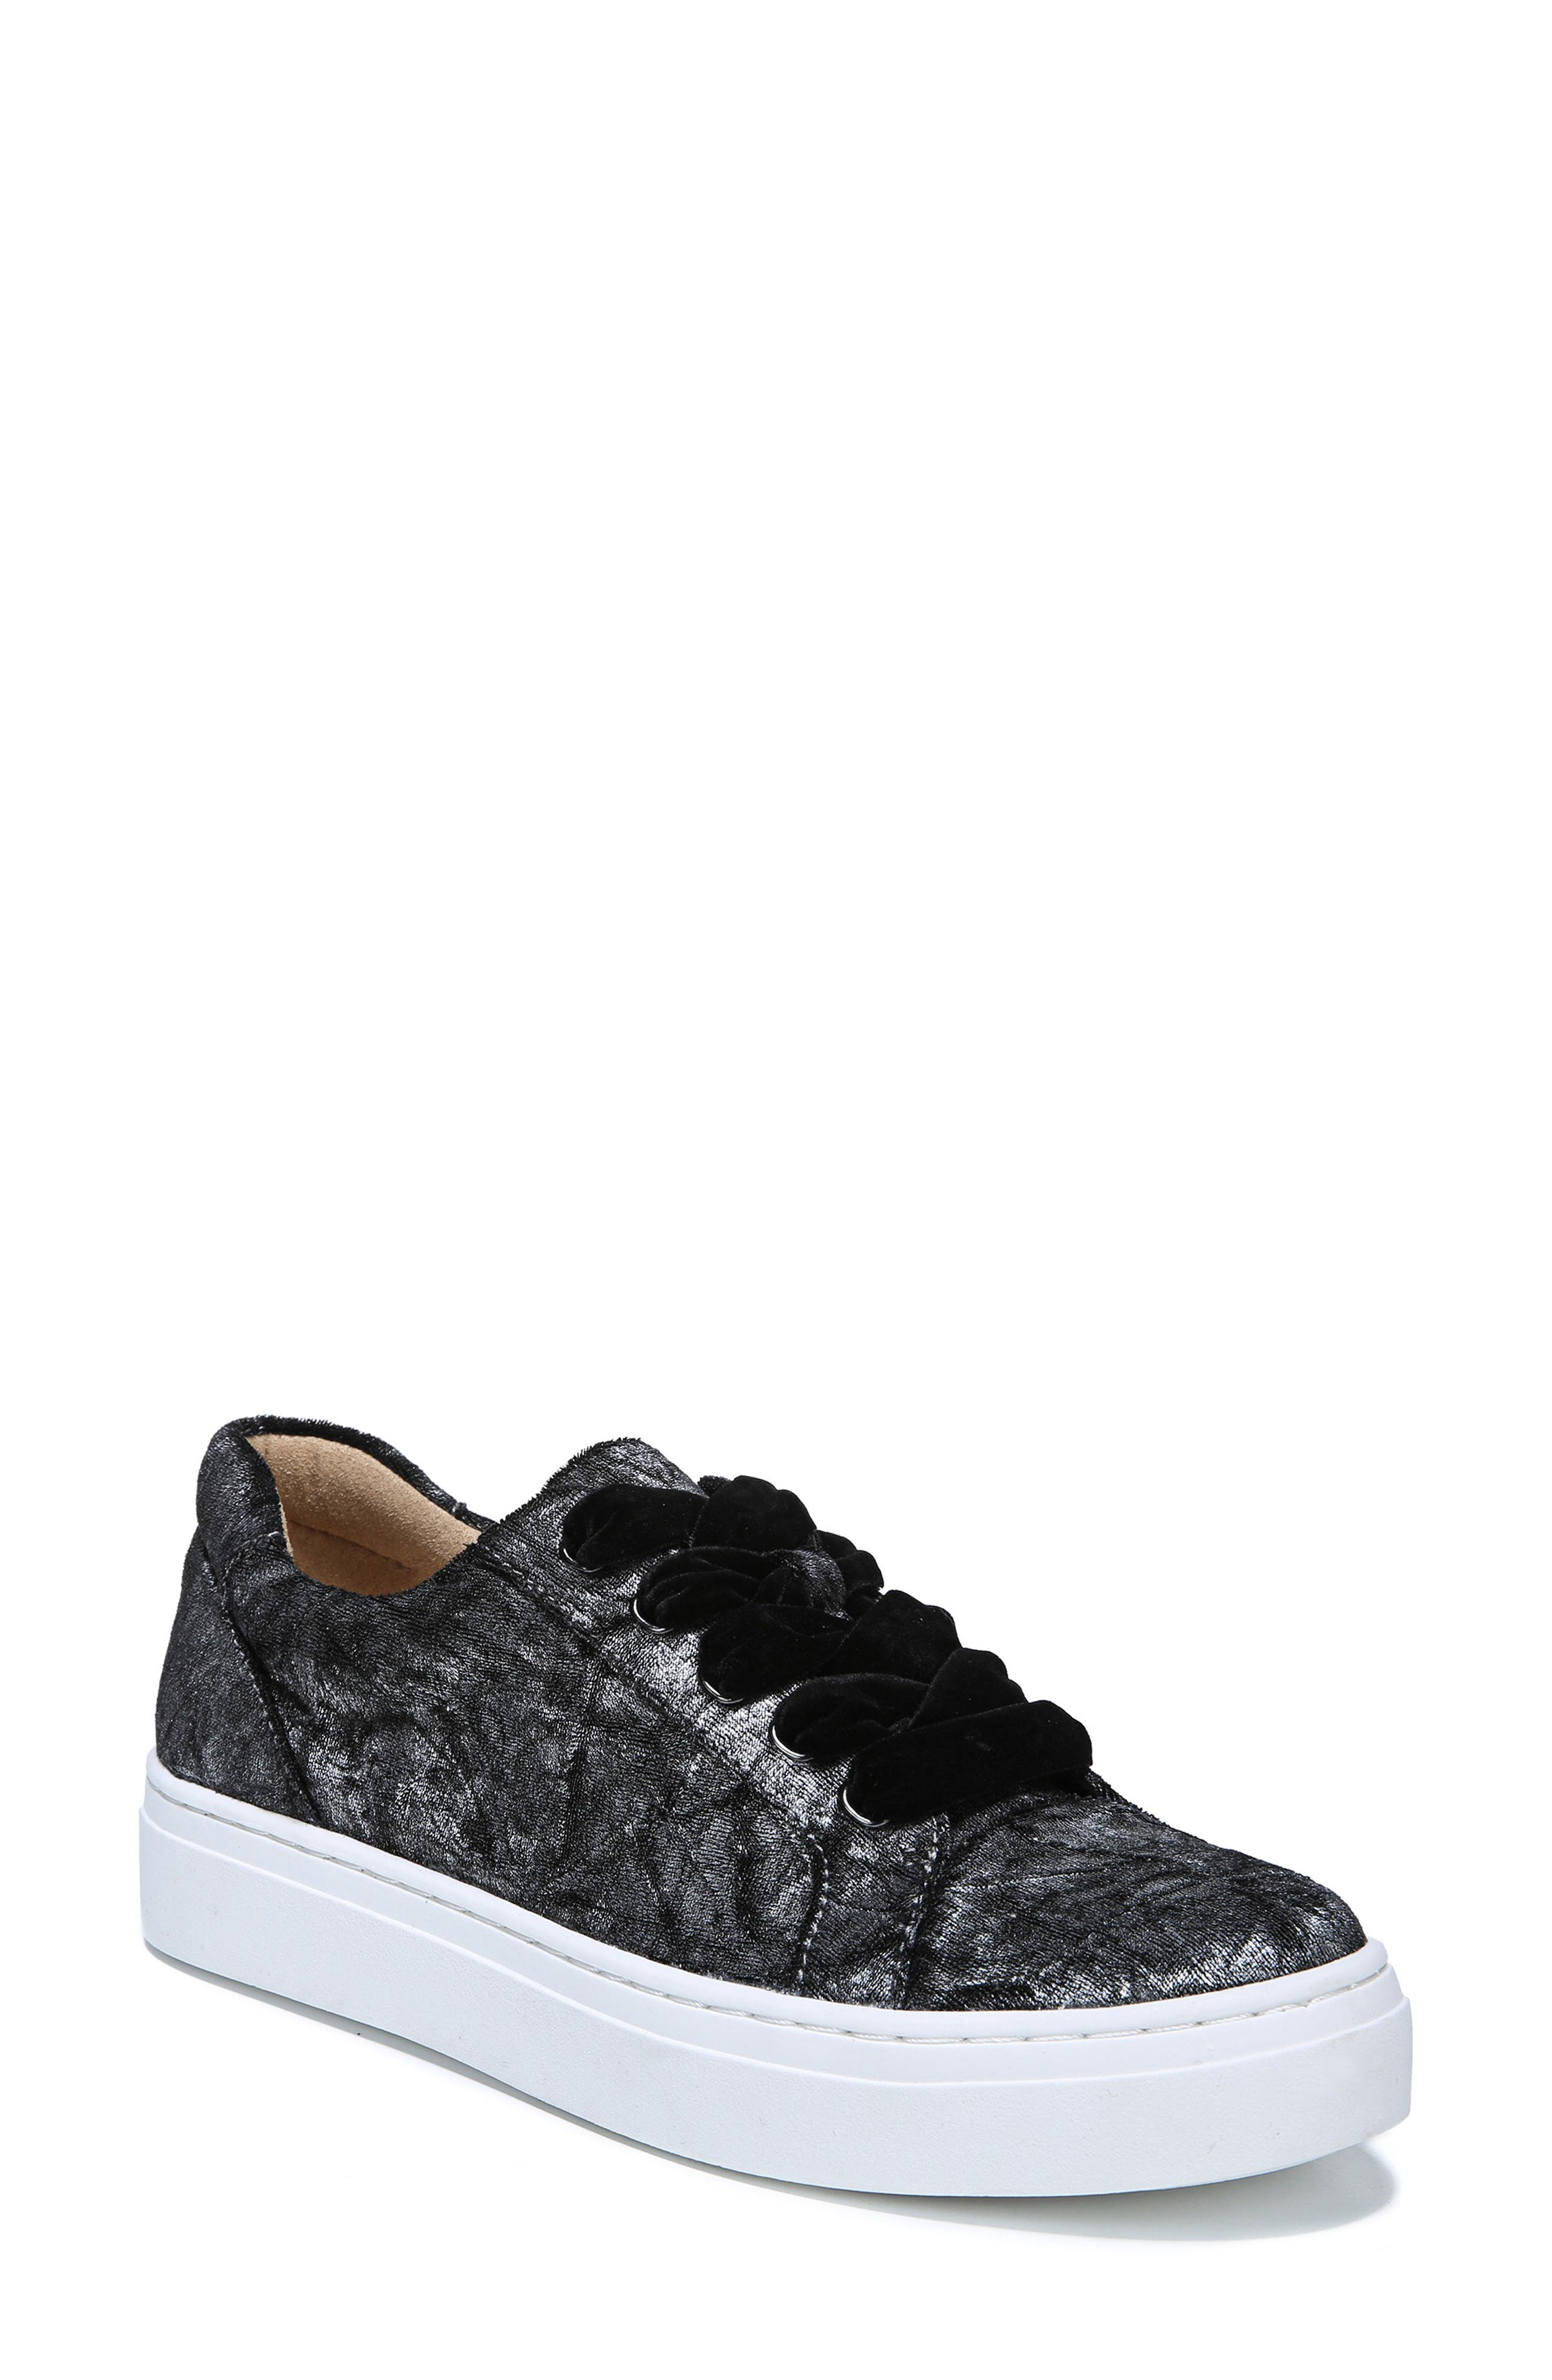 NATURALIZER, Cairo Sneaker, Main thumbnail 1, color, PEWTER VELVET